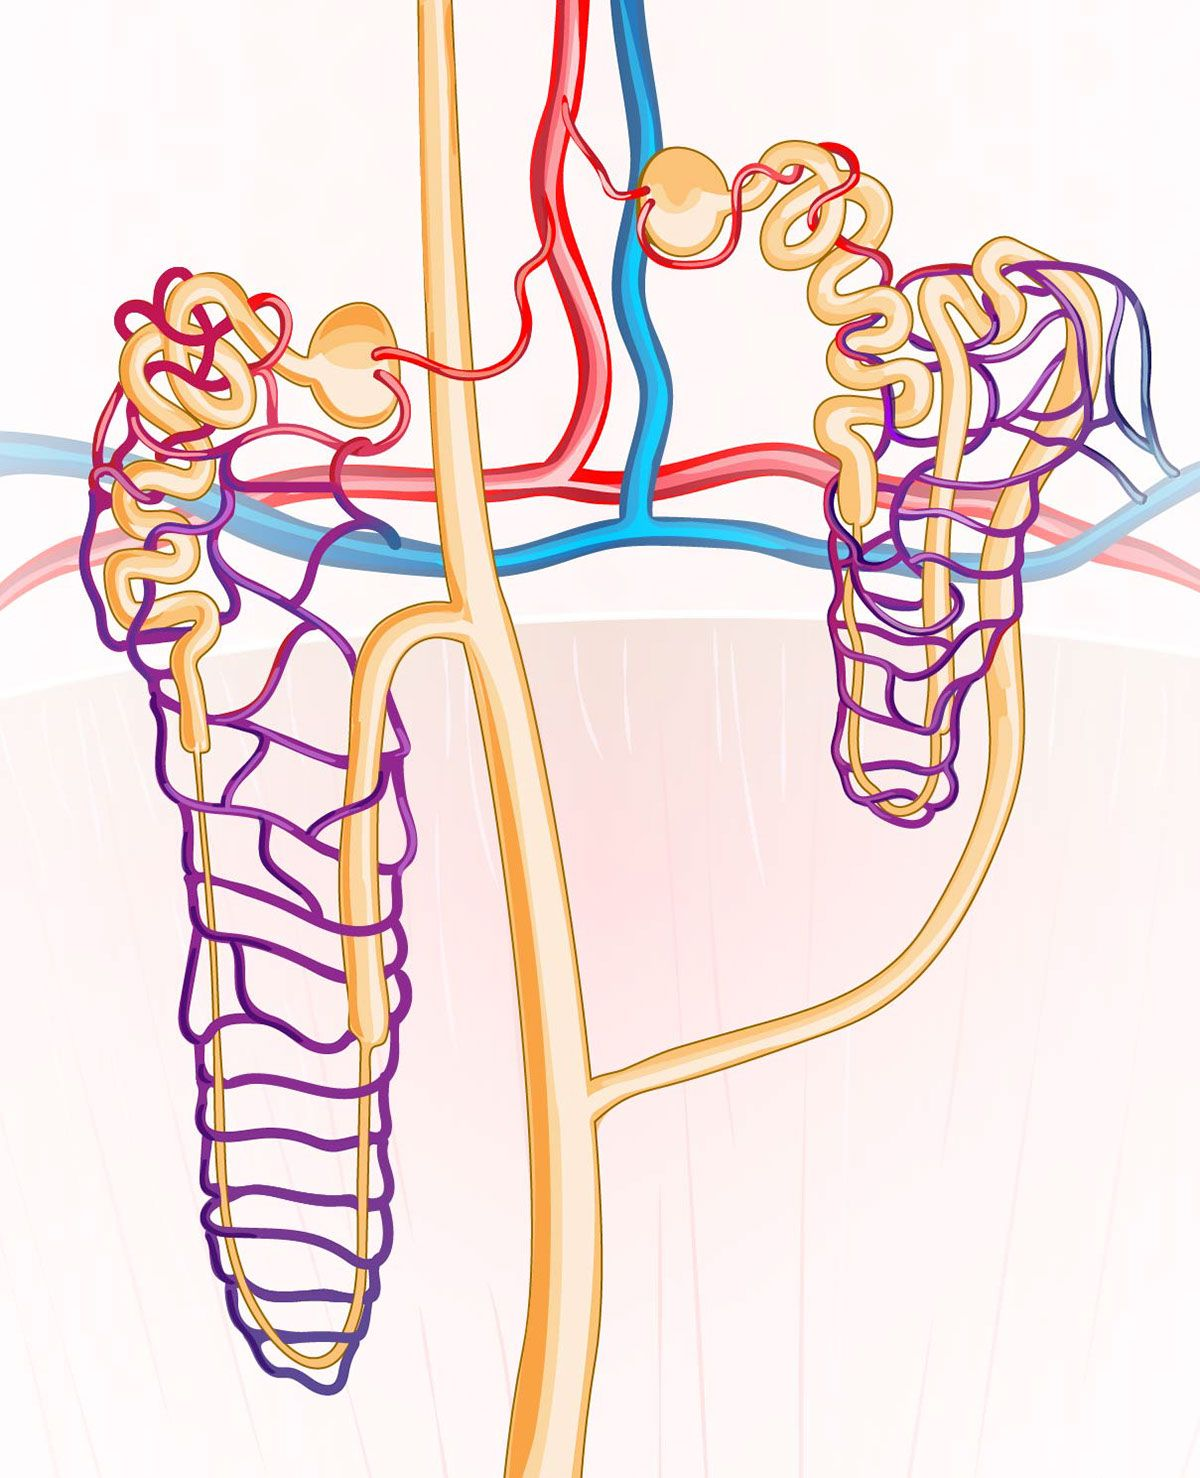 there are two types of nephrons: cortical and juxtamedullary